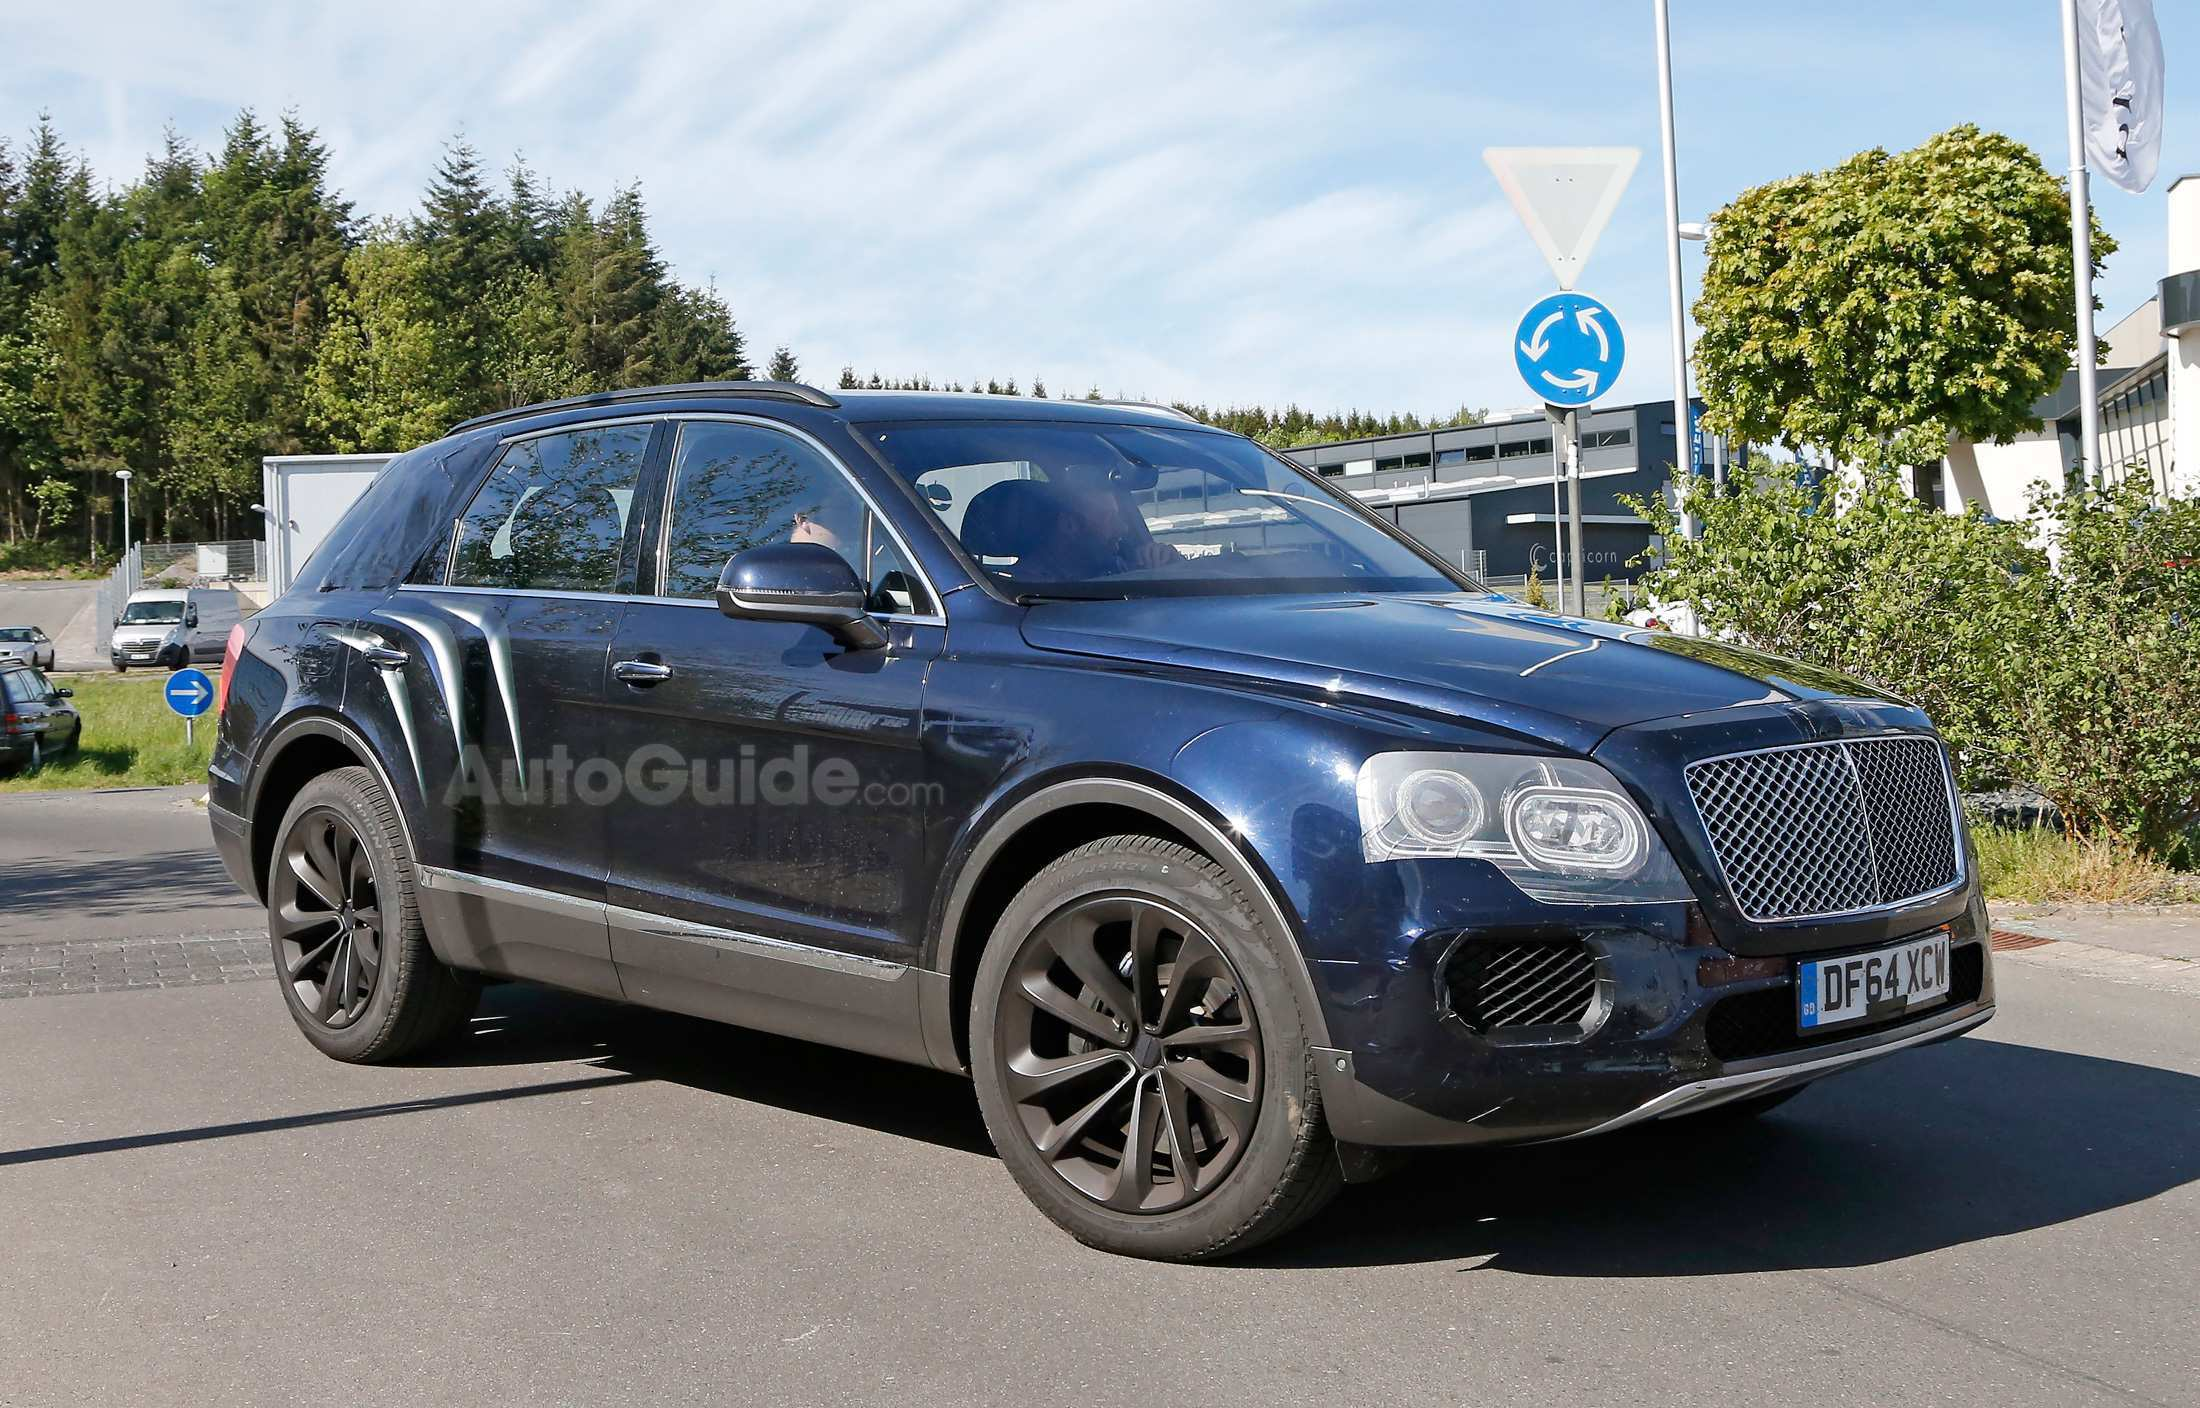 73 The 2020 Bentley Suv Images with 2020 Bentley Suv